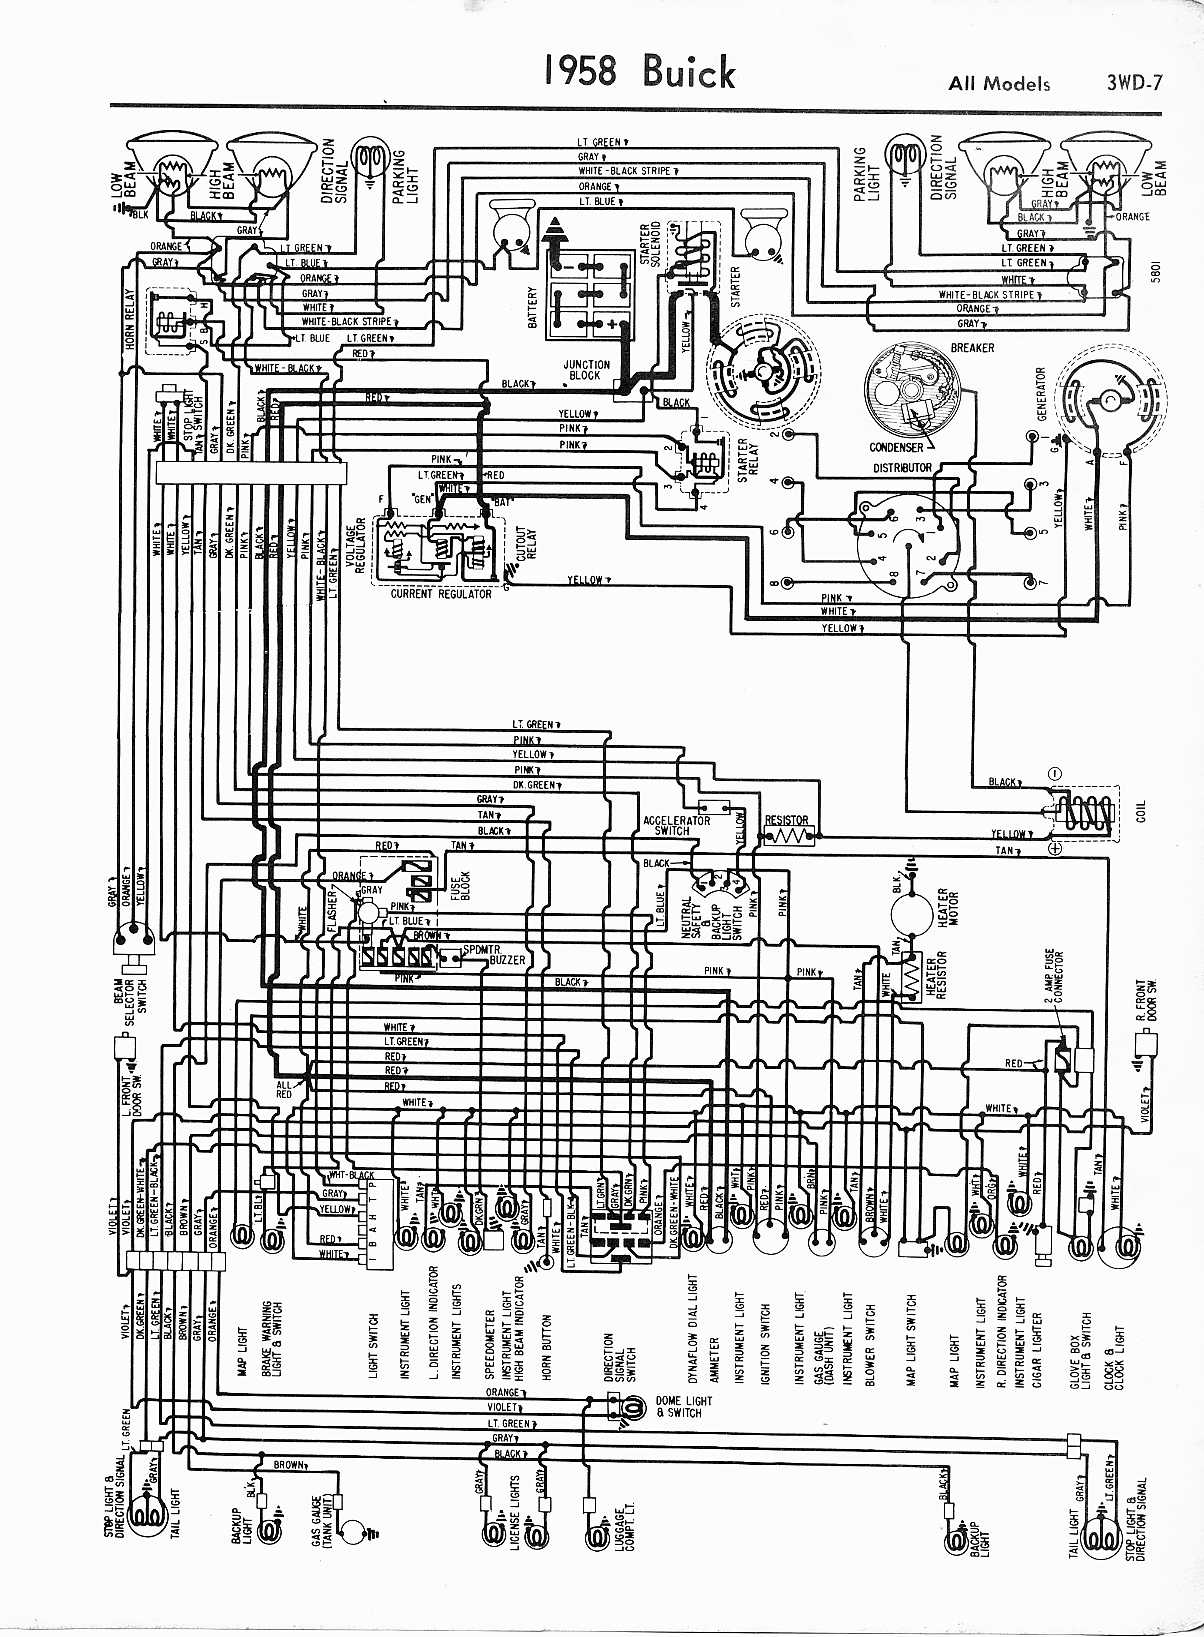 1957 Buick Wiring Diagram Reinvent Your Lucerne Images Gallery